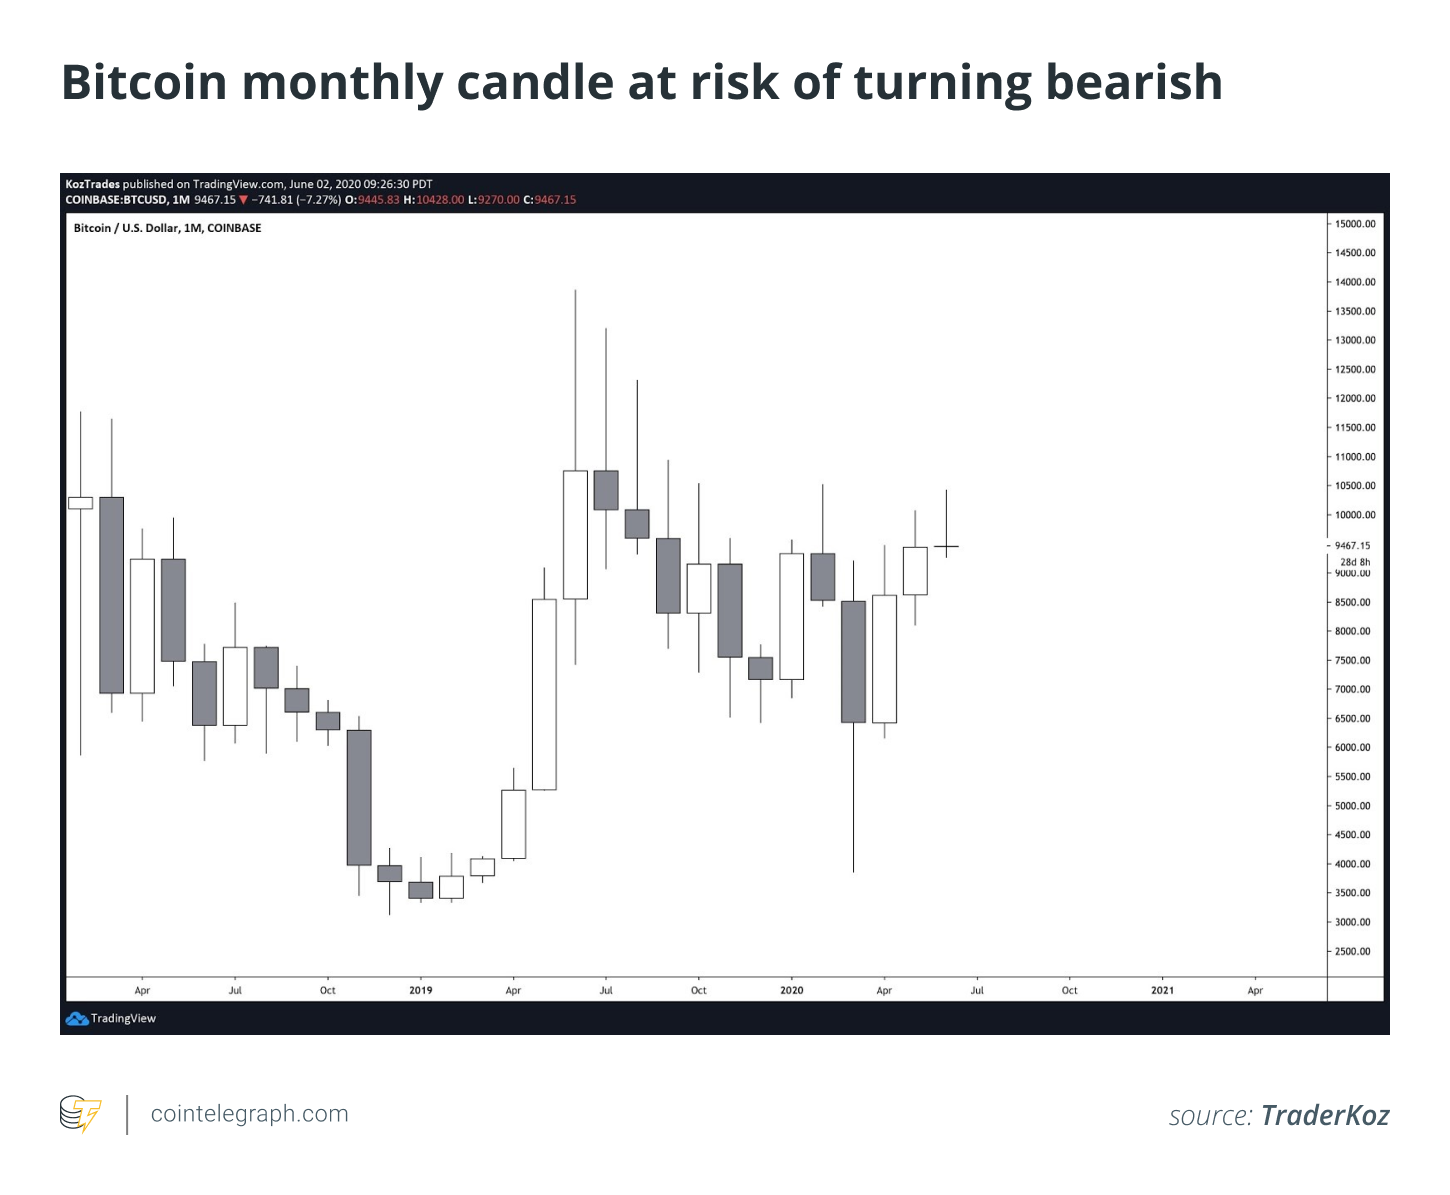 Bitcoin monthly candle at risk of turning bearish